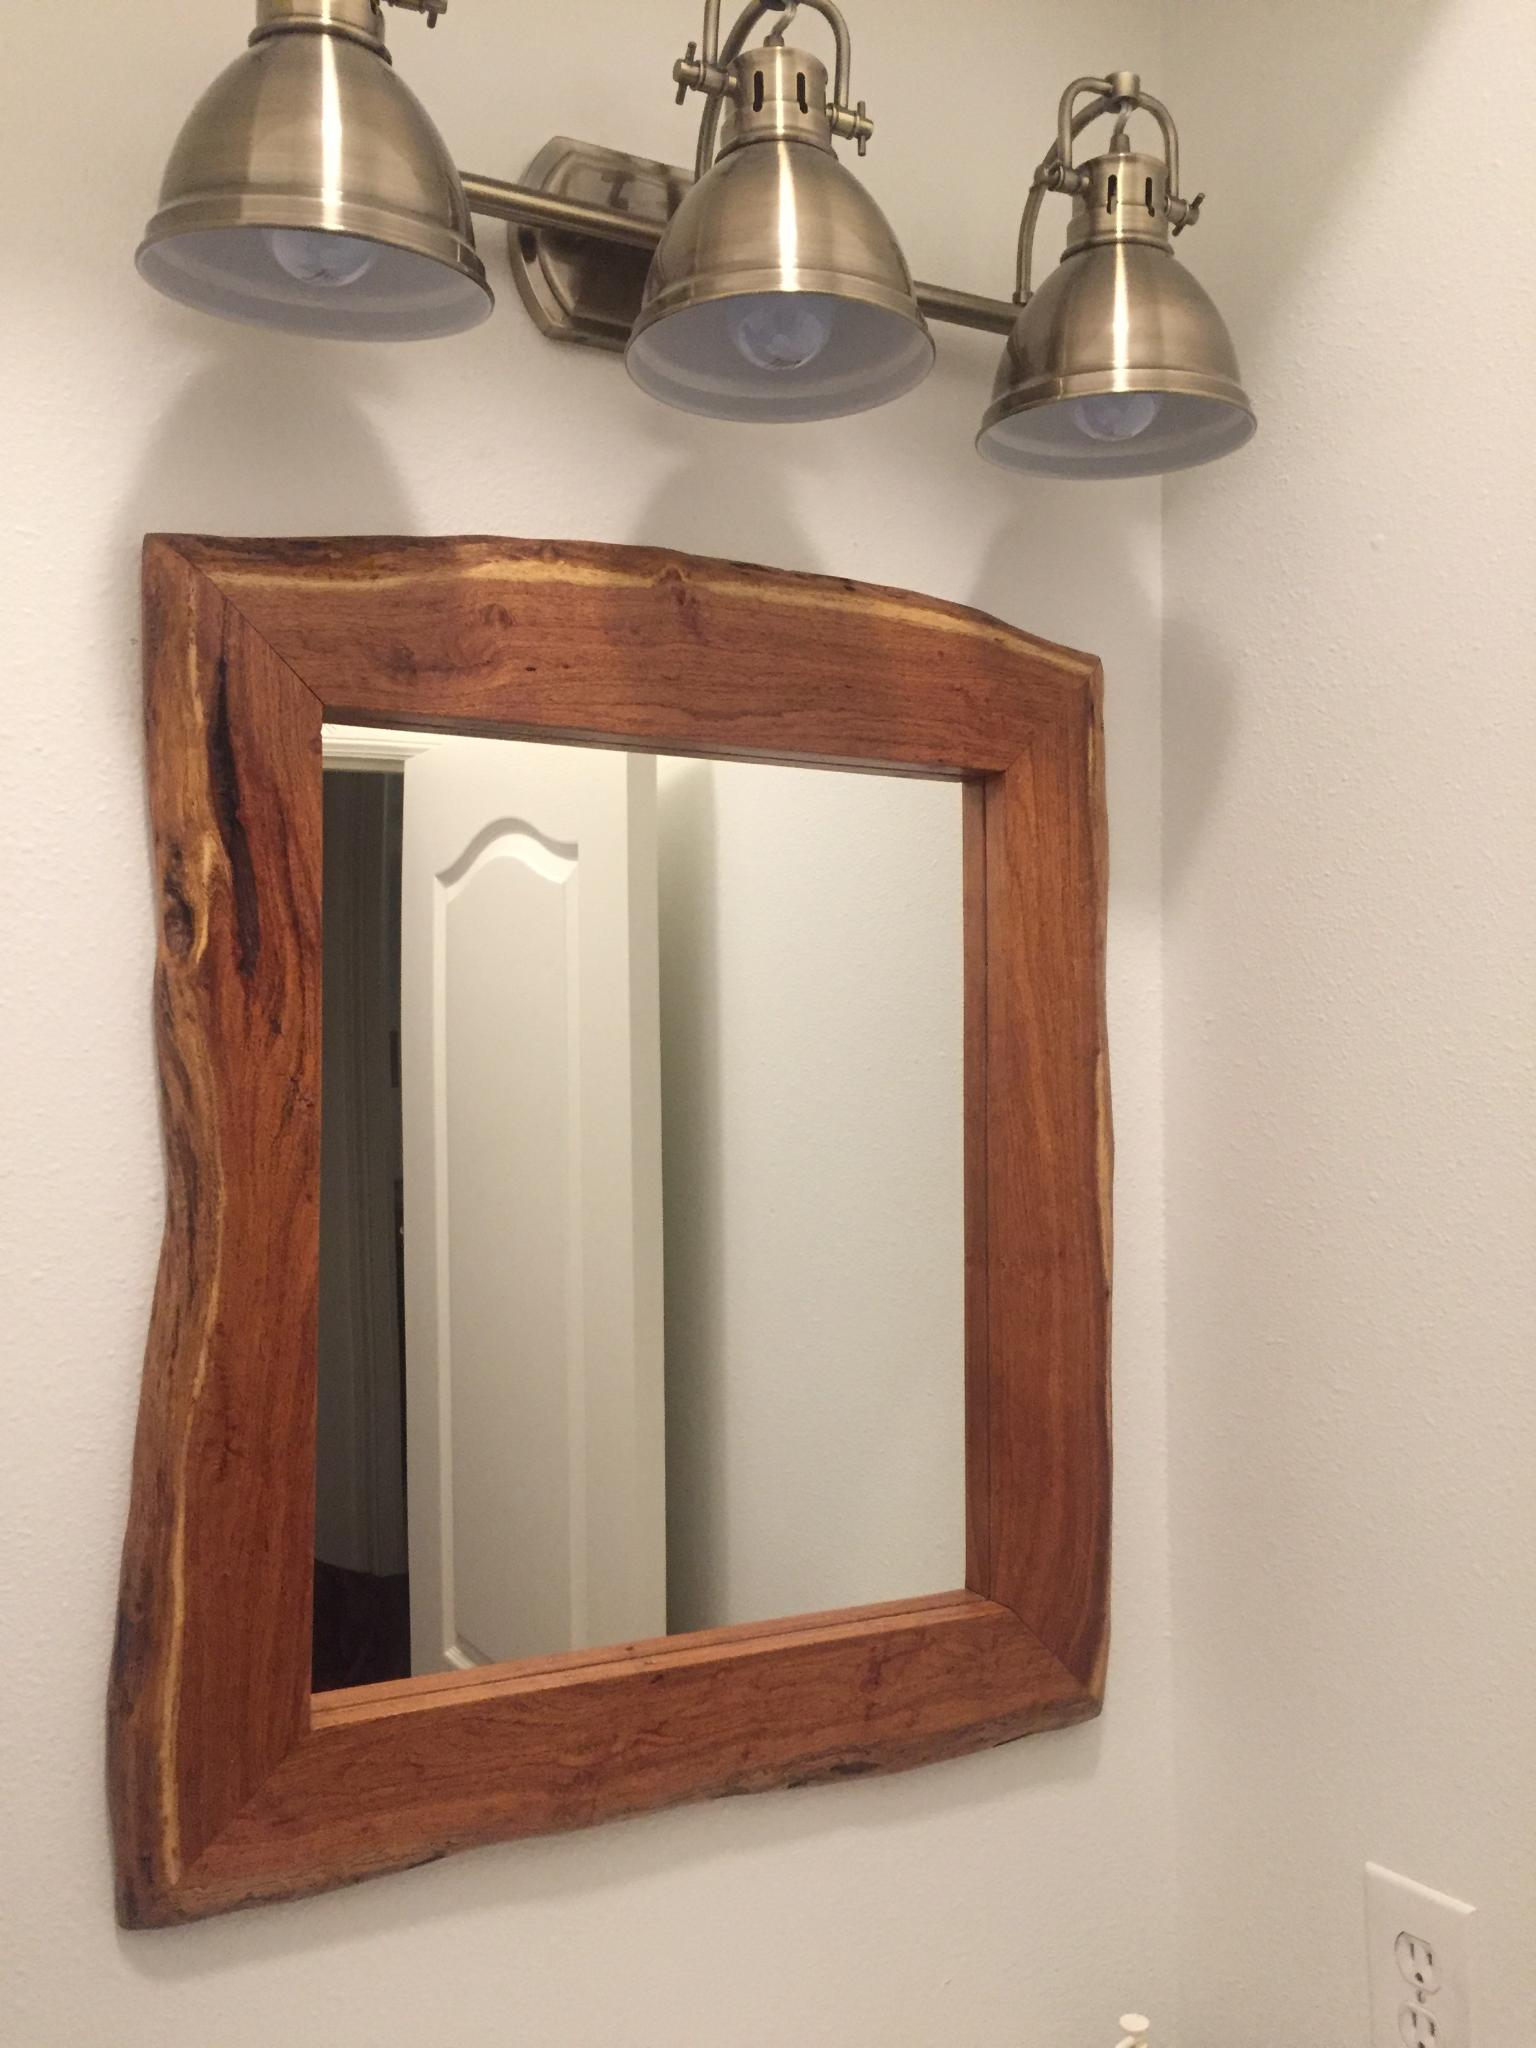 Custom mirror and picture frames sycamore creek creations custom mirror and picture frames jeuxipadfo Choice Image